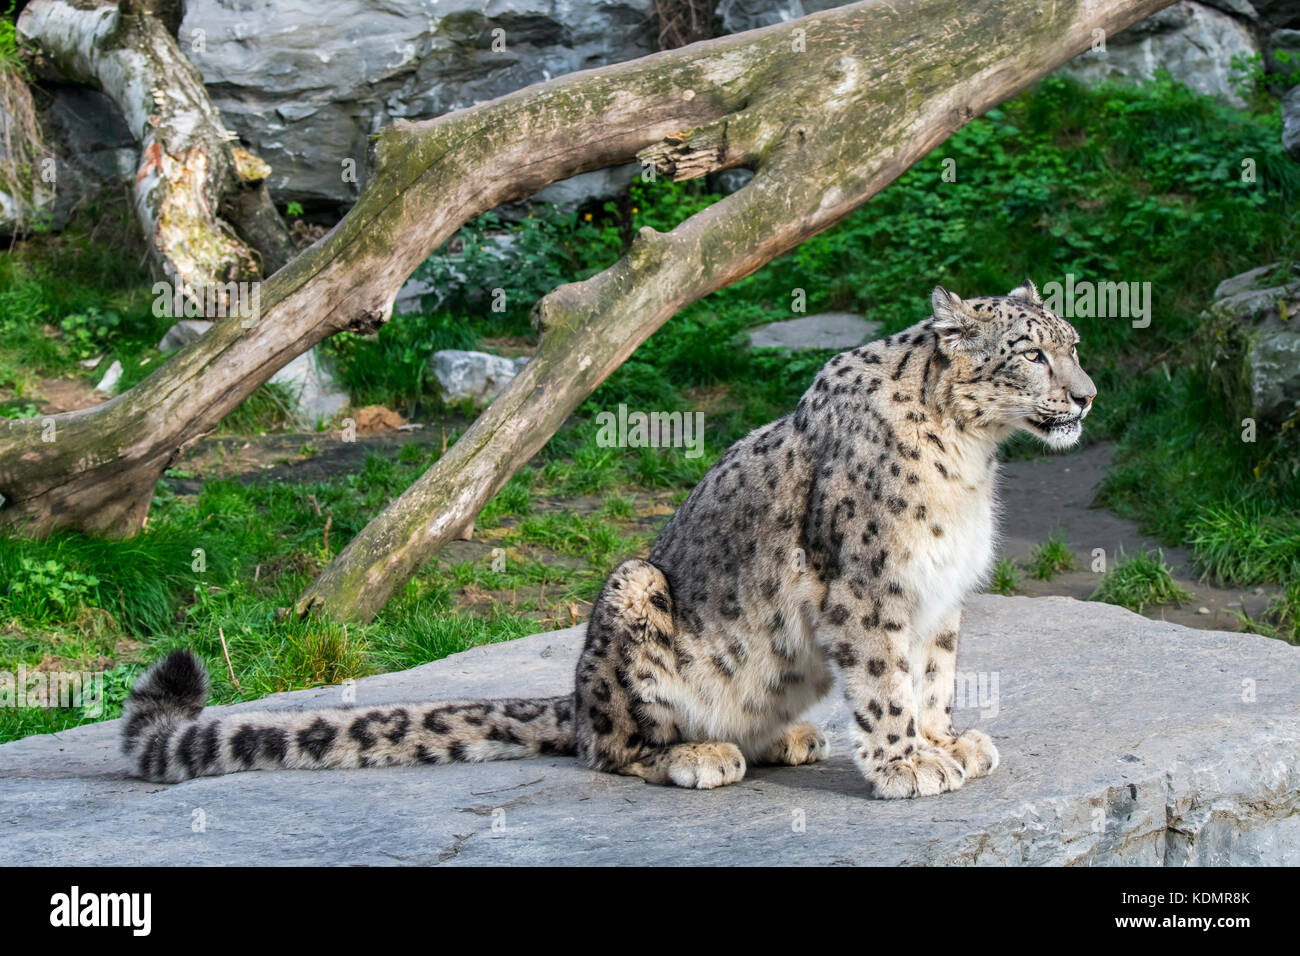 Snow leopard / ounce (Panthera uncia / Uncia uncia) native to the mountain ranges of Central and South Asia sitting - Stock Image